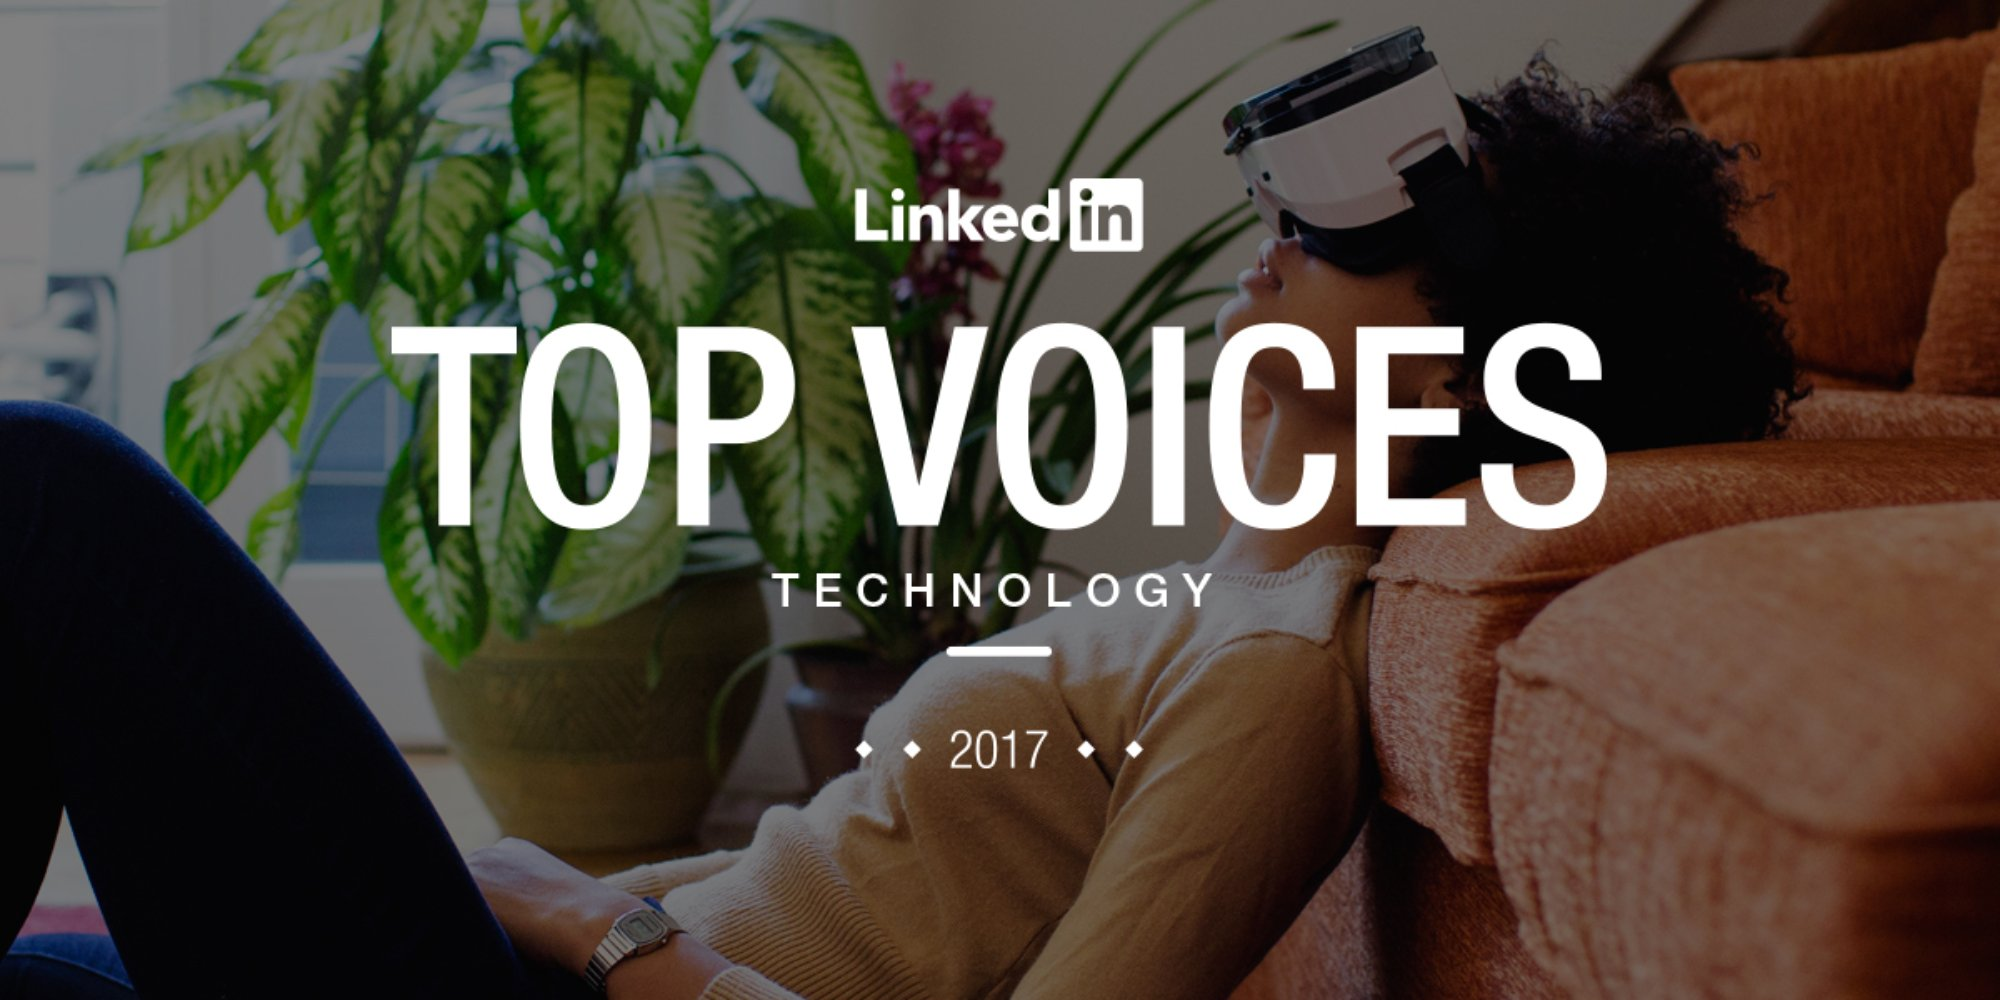 LinkedIn Top Voices in Technology 2017